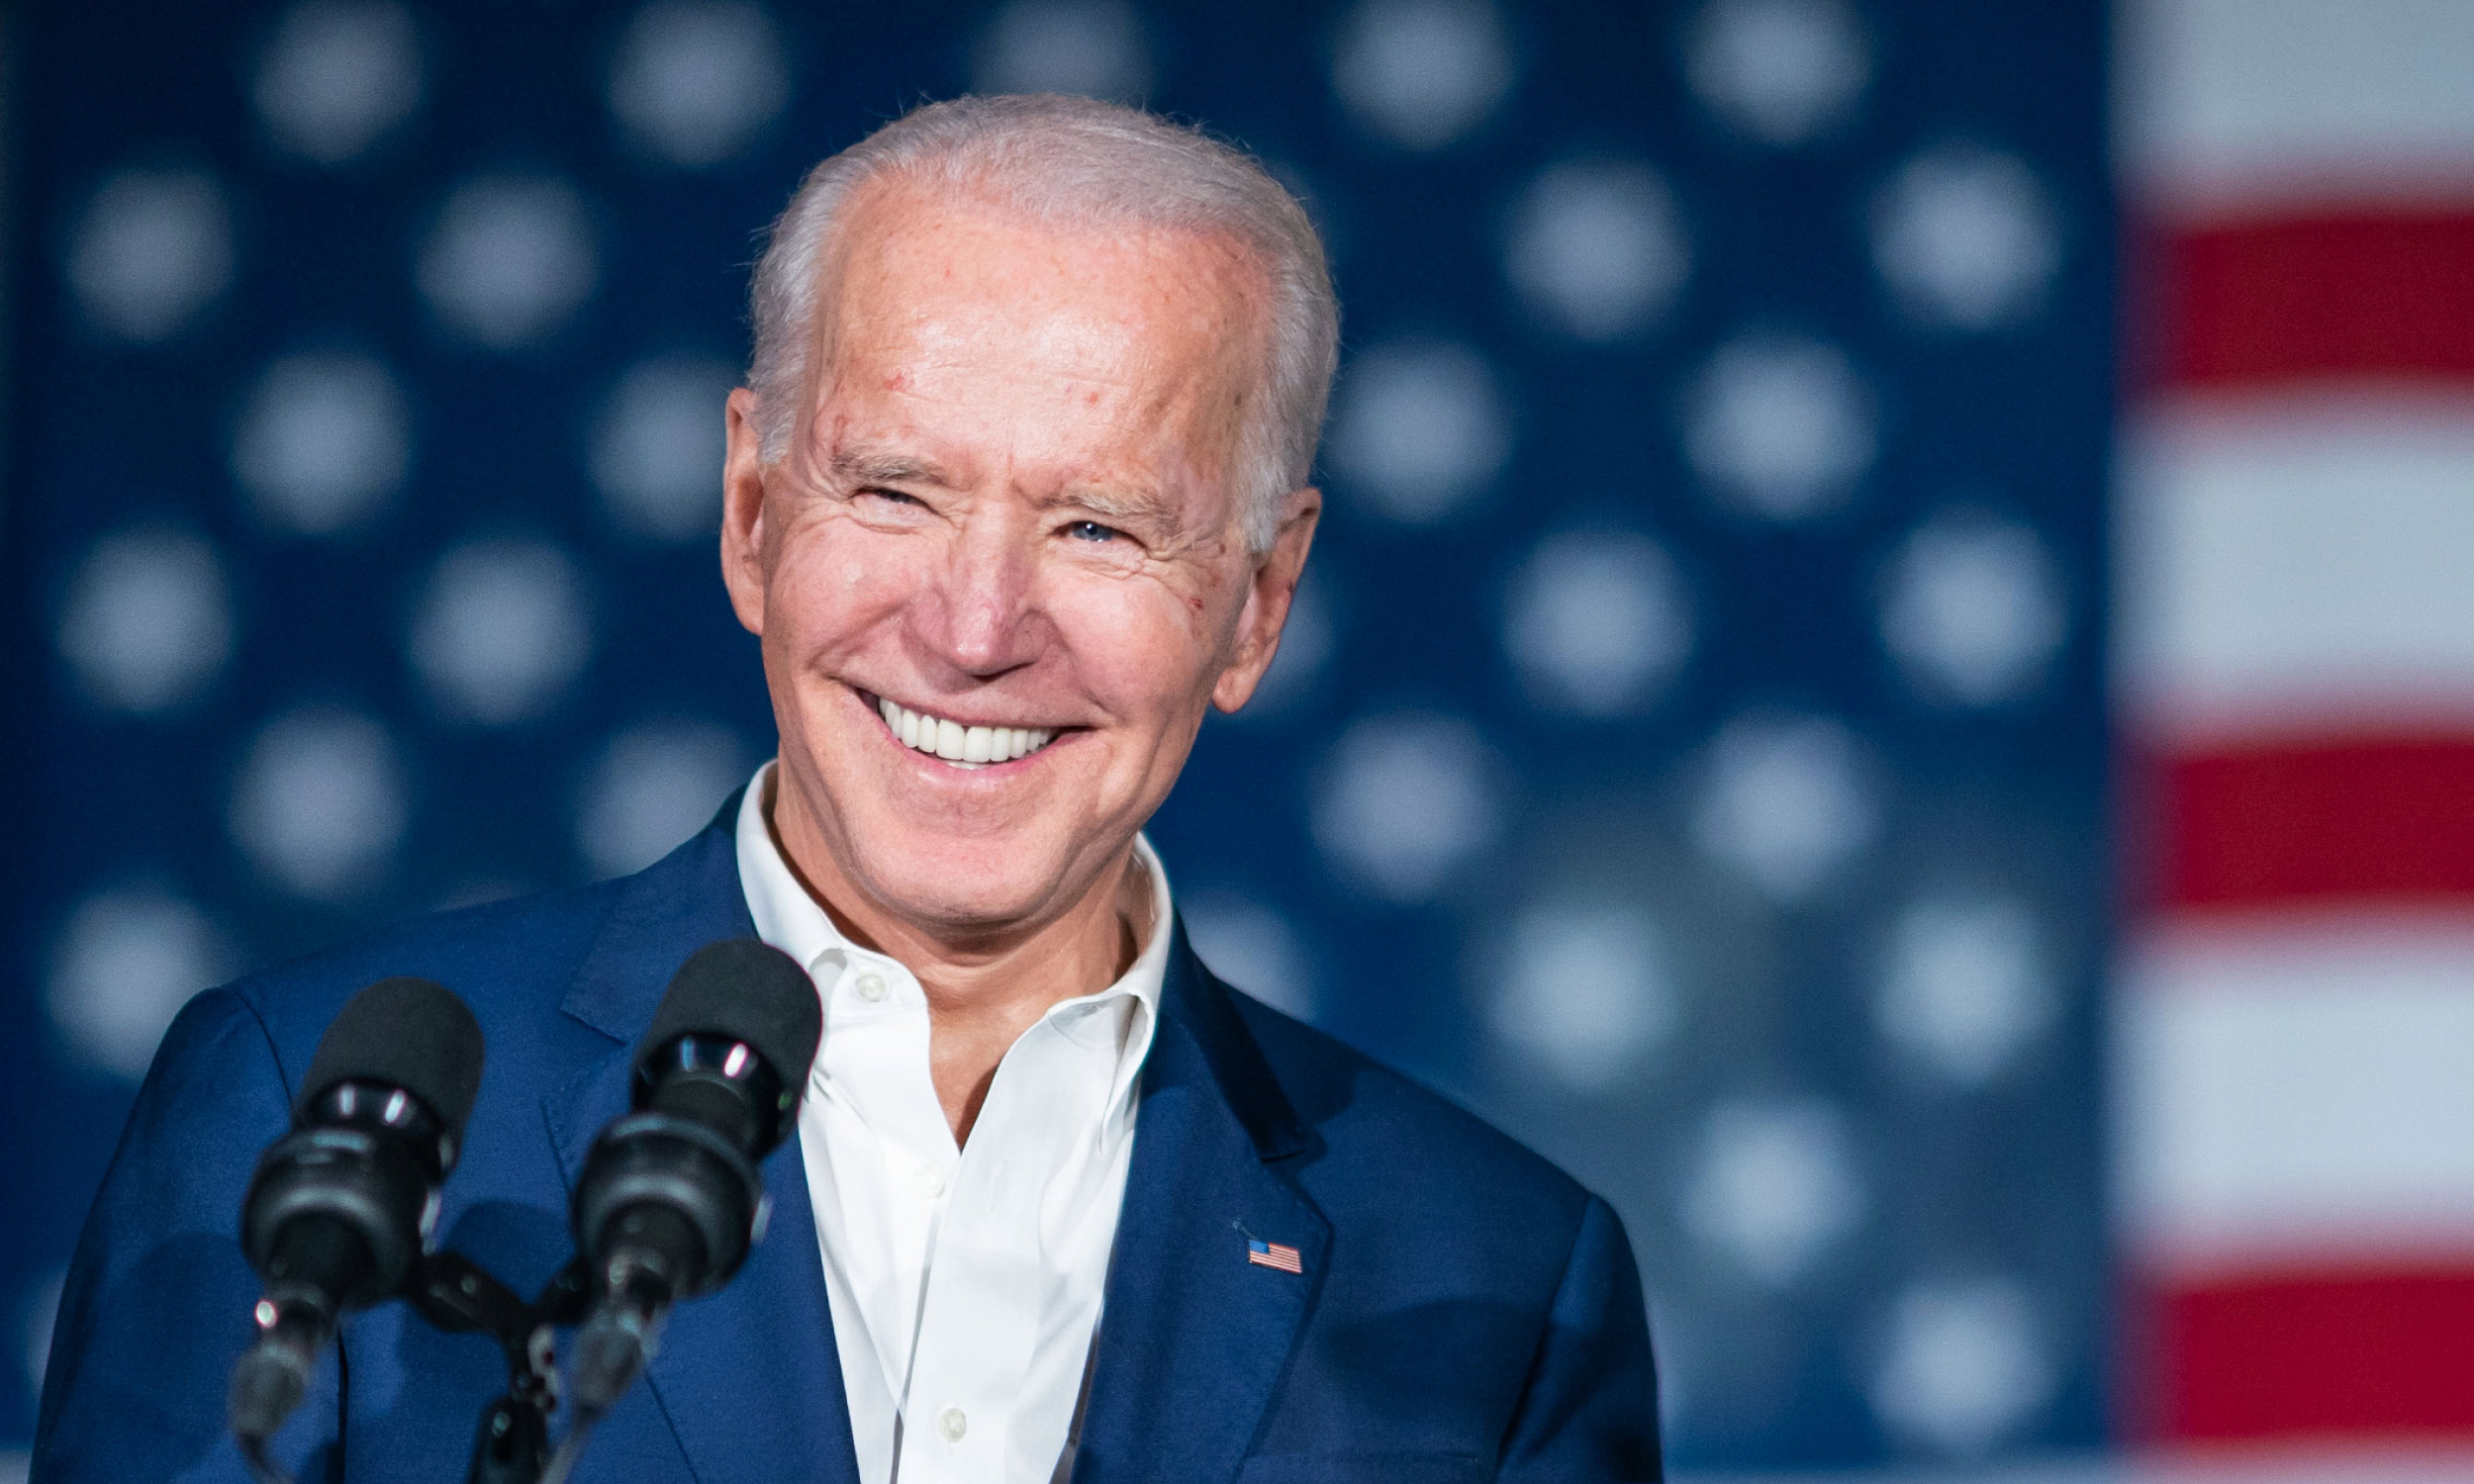 Biden authorizes 5,000 troops to be sent to Afghanistan